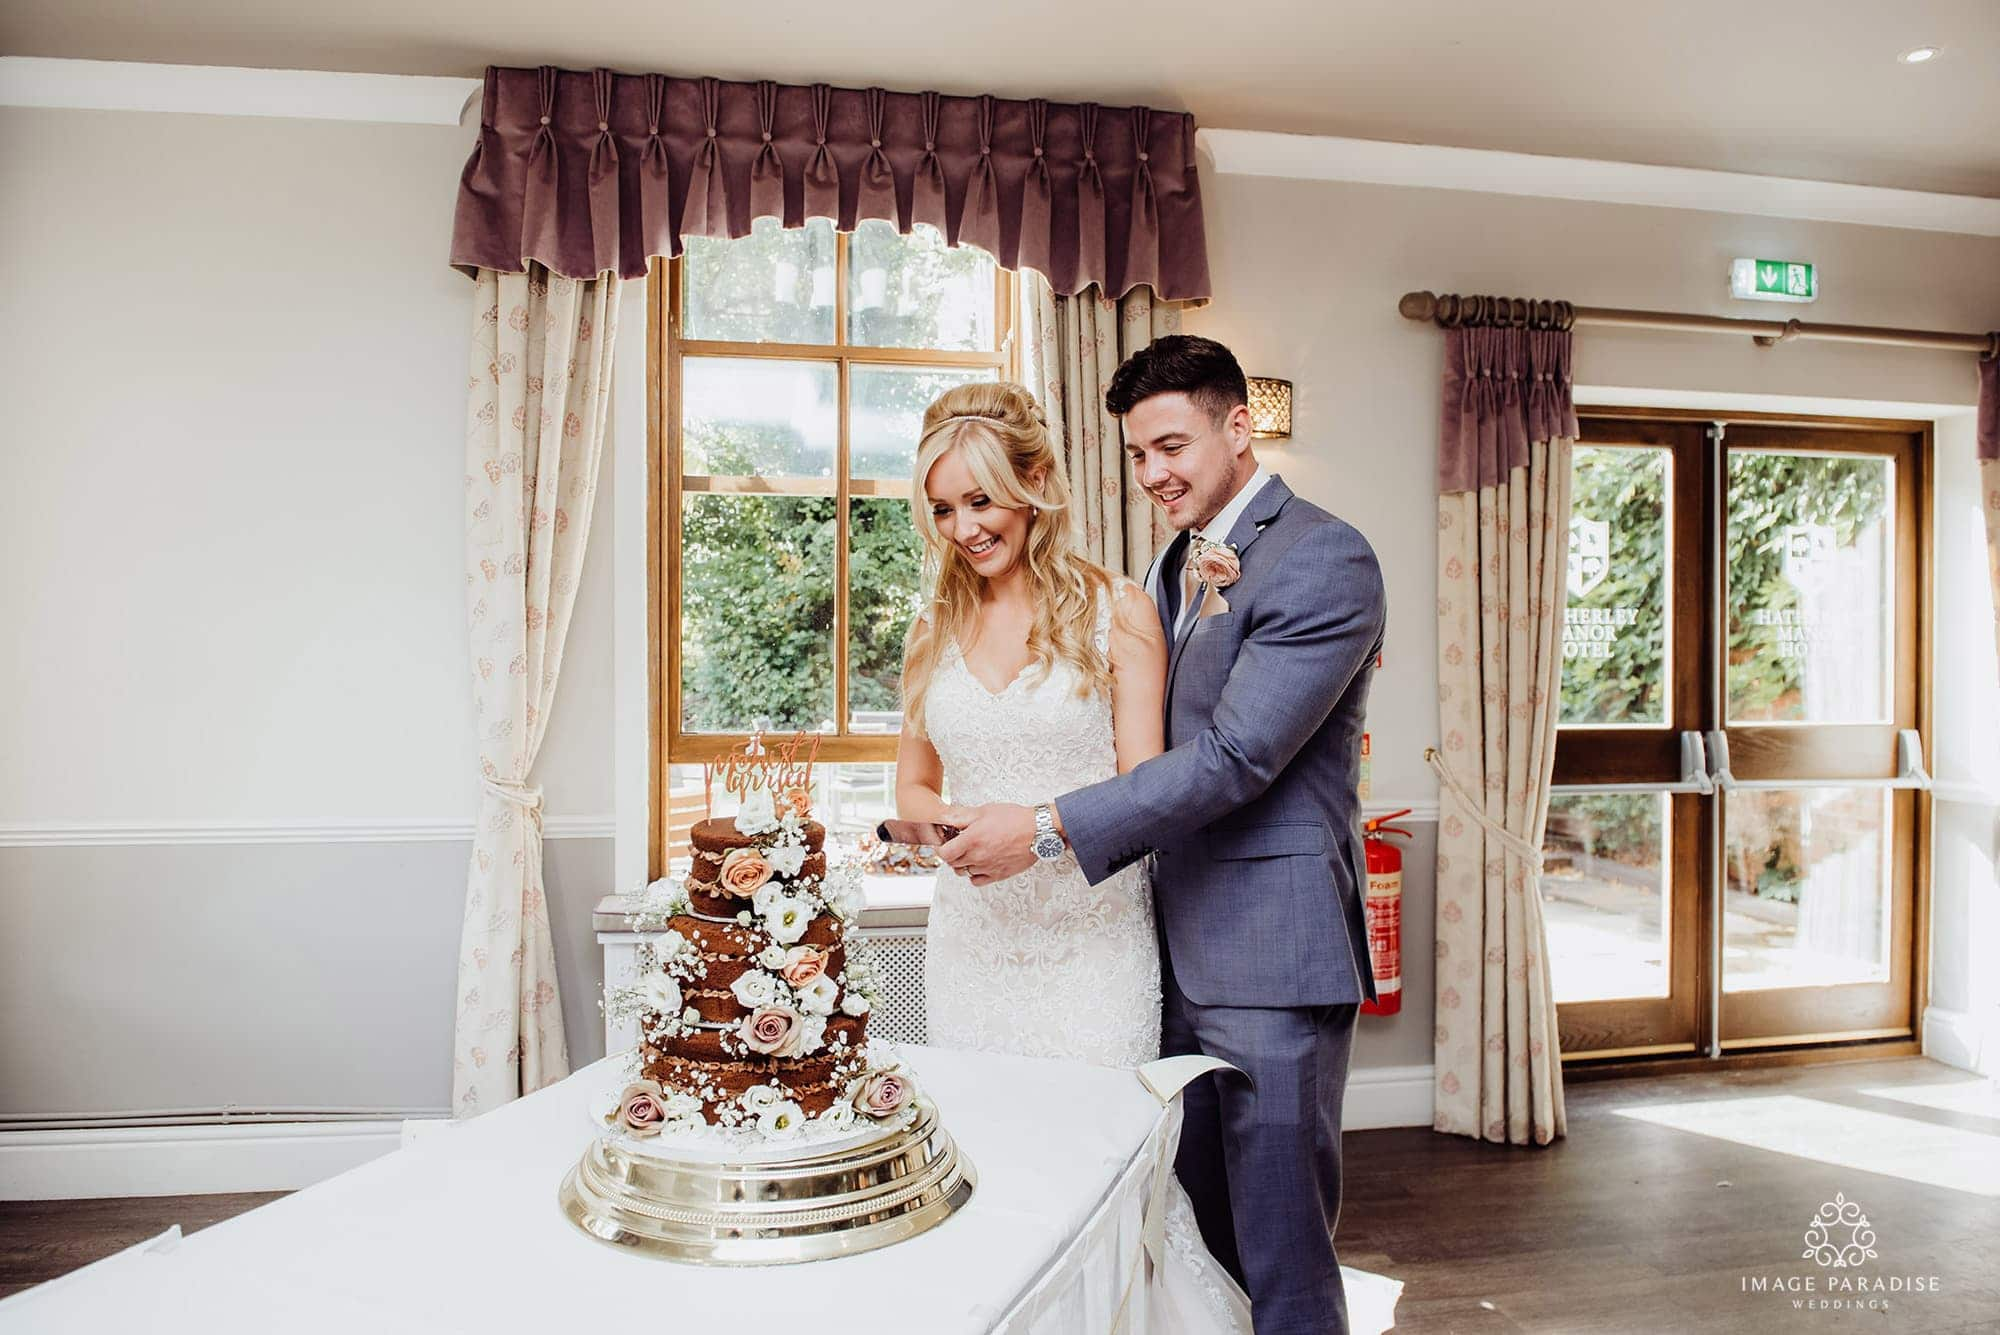 bride and groom cut cake at Hatherley Manor wedding venue